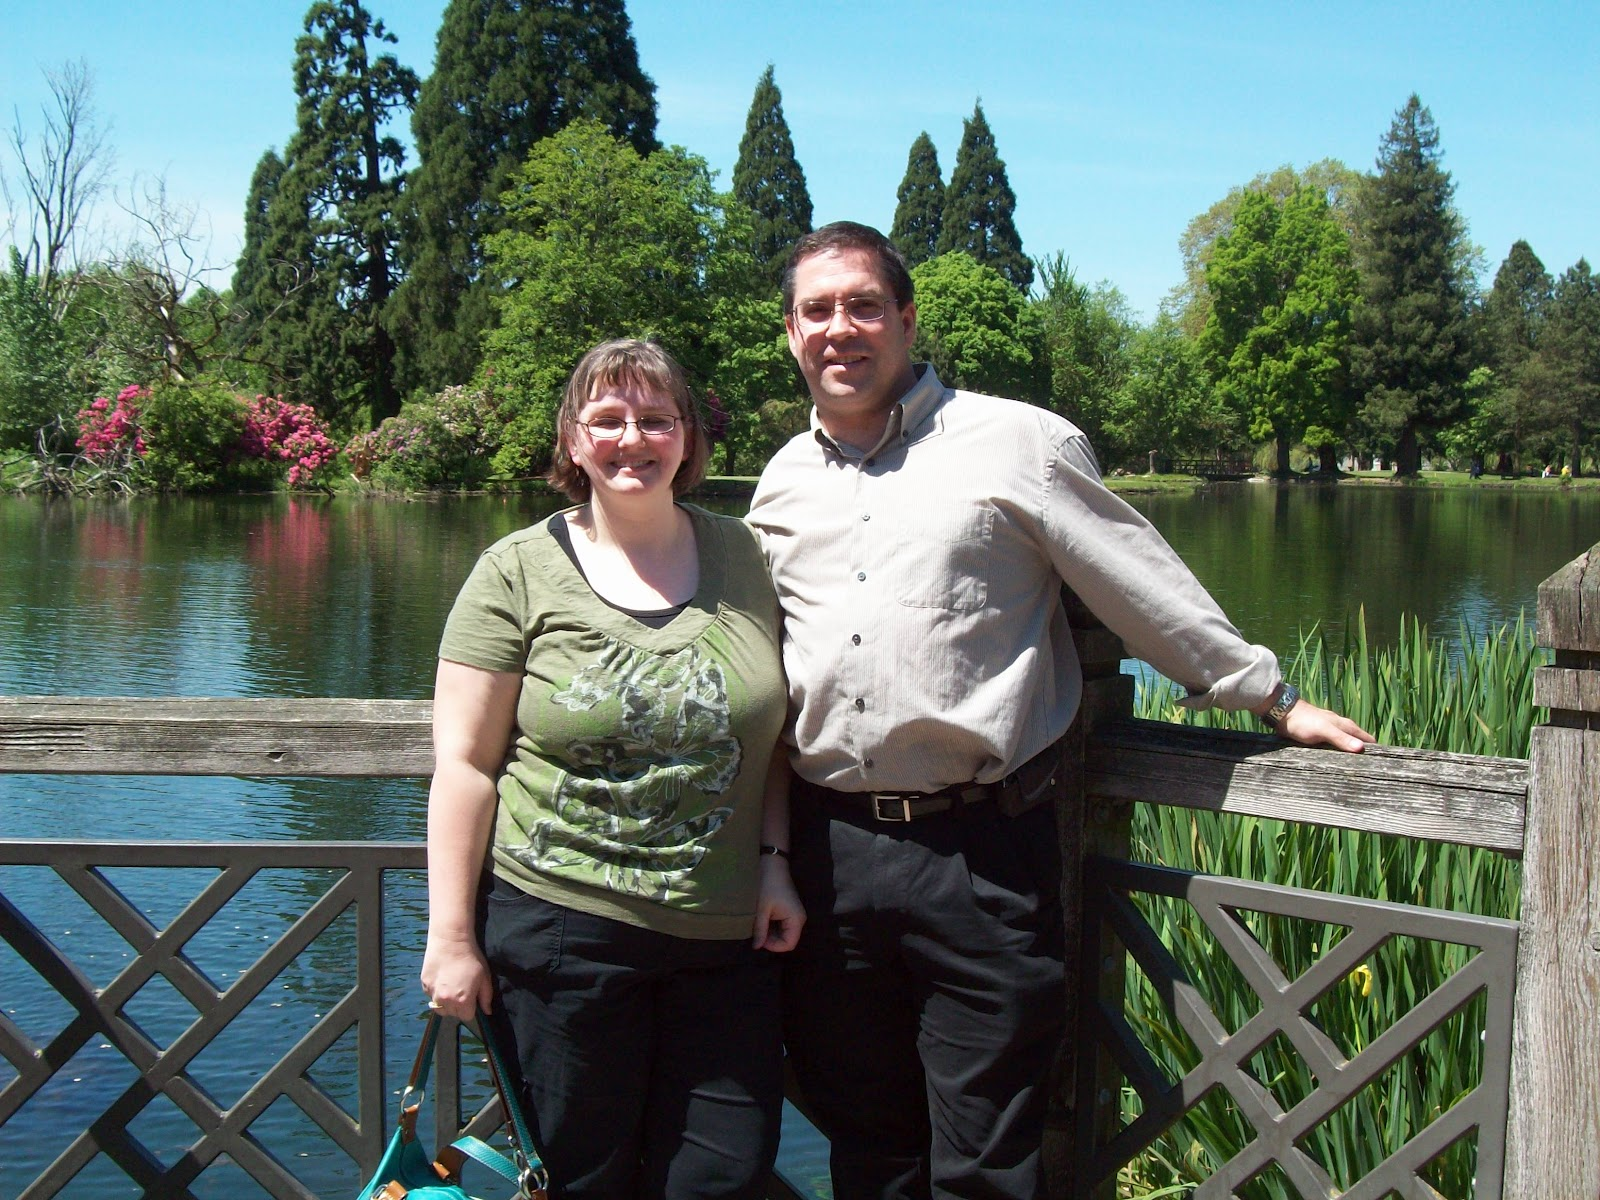 April's Homemaking: Mother's Day at The Rhododendron Gardens